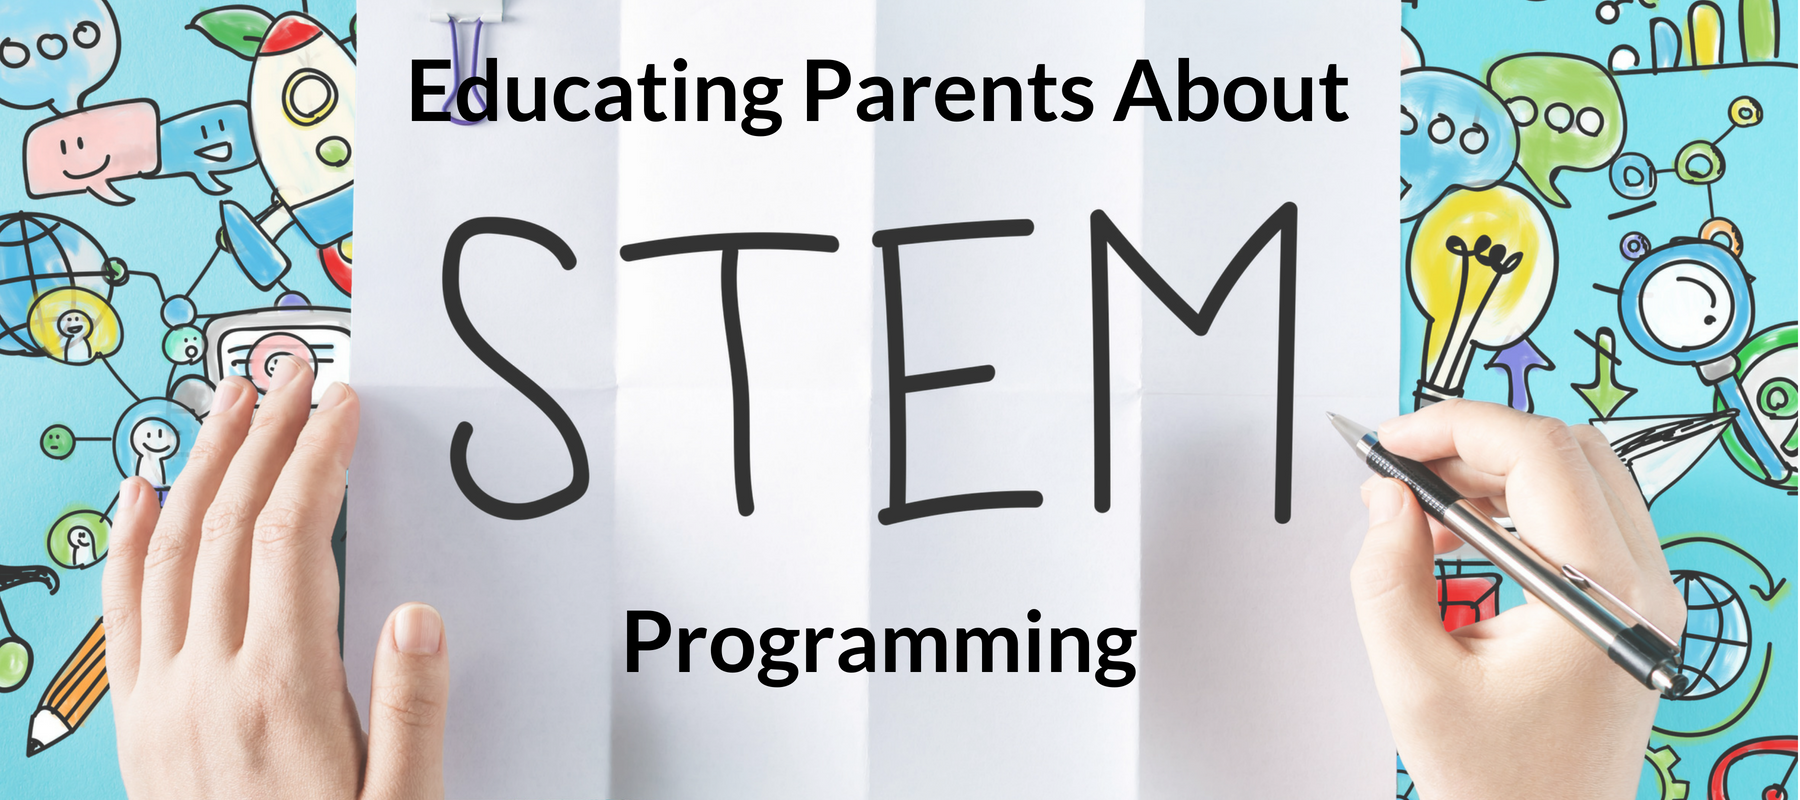 Educating Parents About STEM Programming